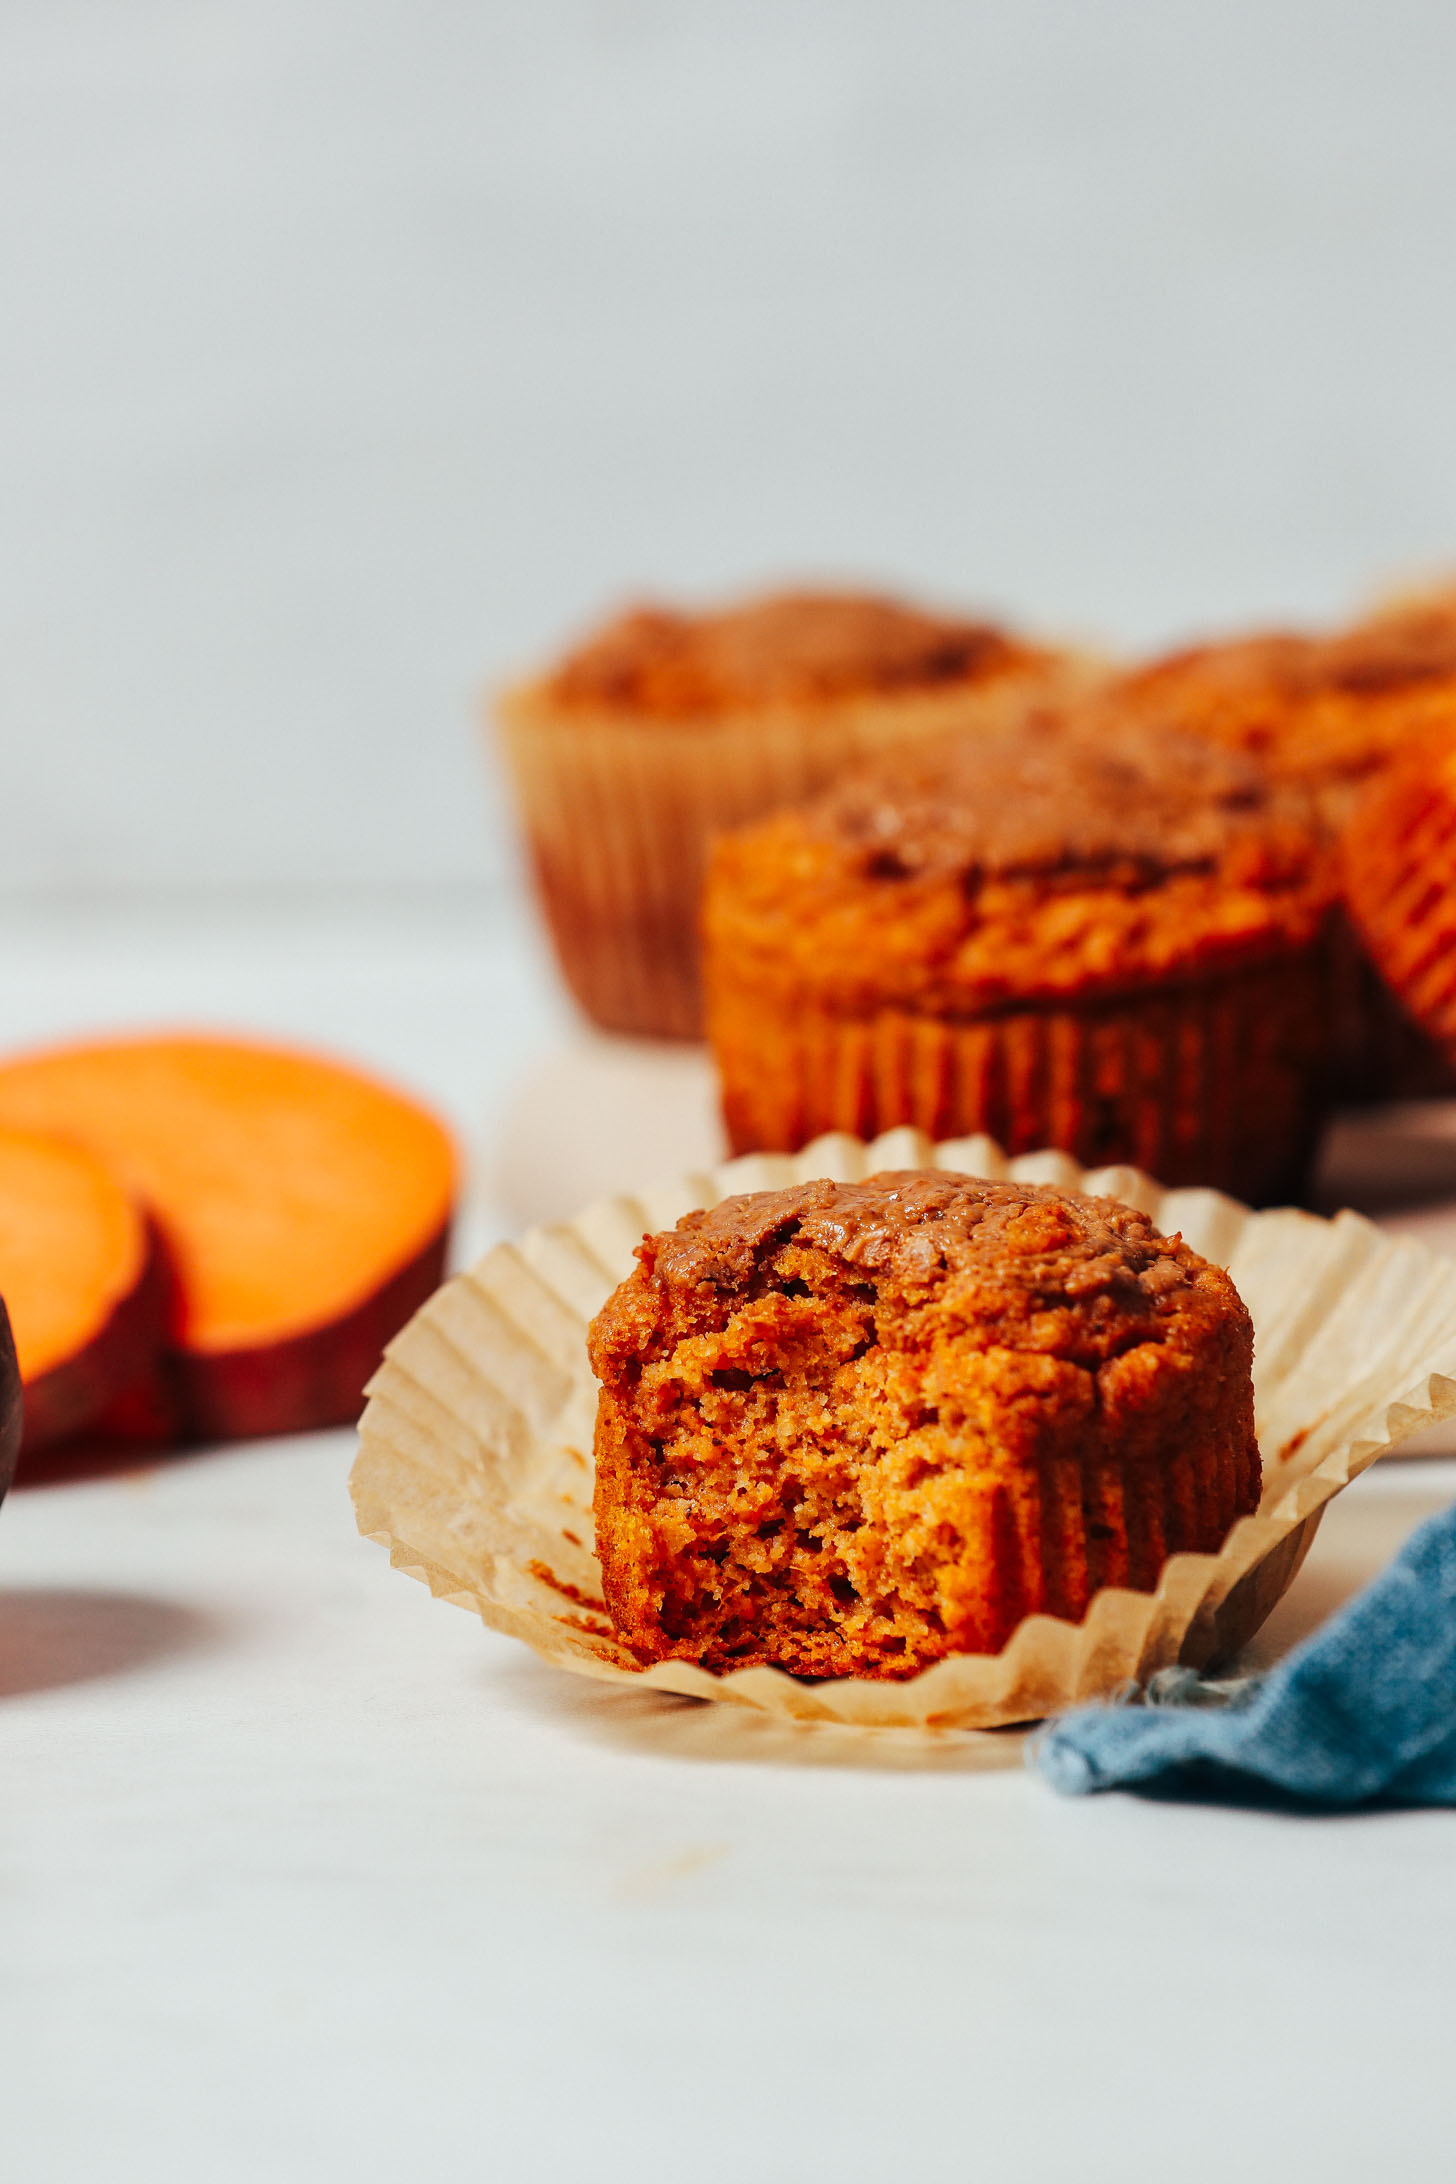 Partially eaten Almond Butter Sweet Potato Muffin beside sliced sweet potato rounds